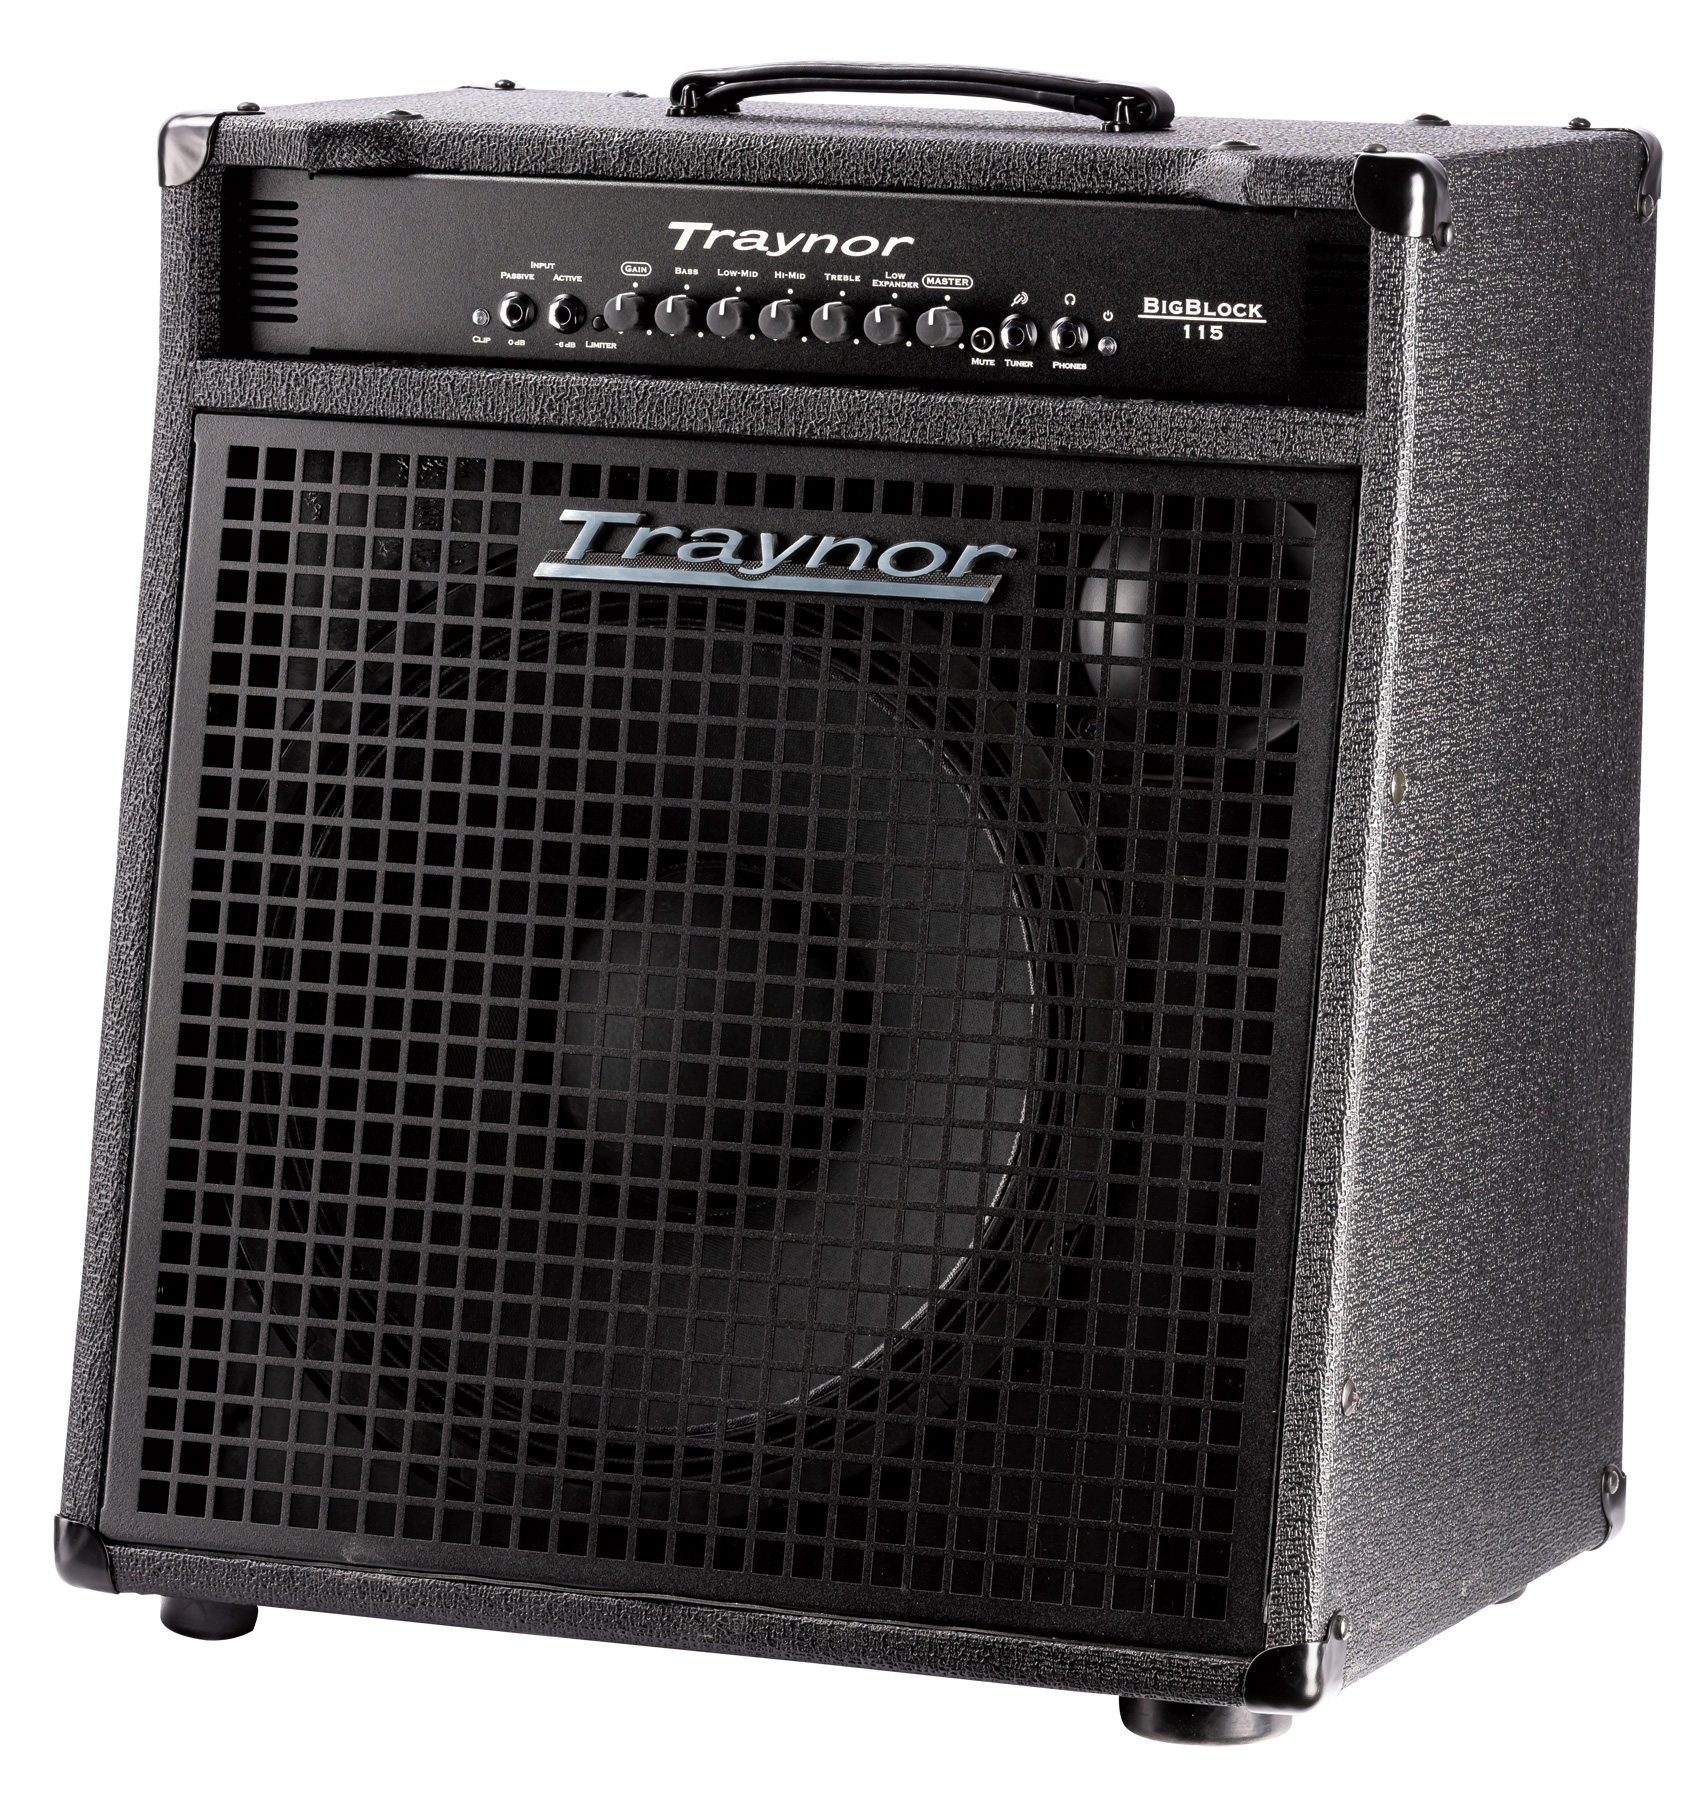 Traynor BIG BLOCK 115,  400/800-Watt Bass Combo